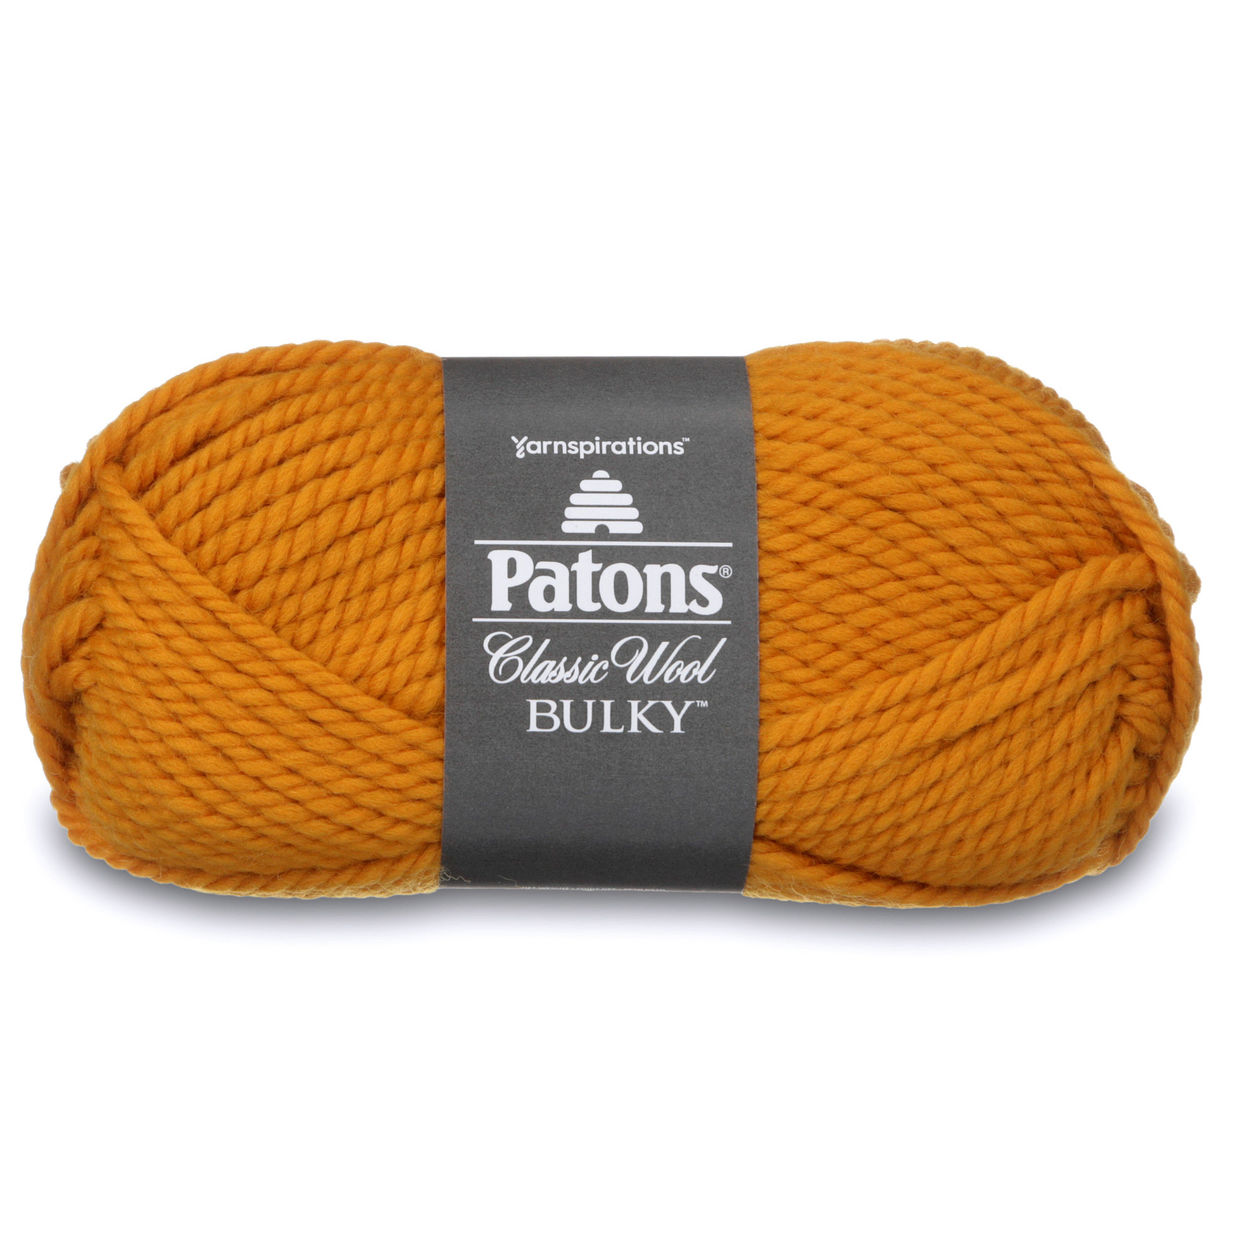 Patons Classic Wool Bulky Yarn (89610) Gold by LP Spinrite in USA